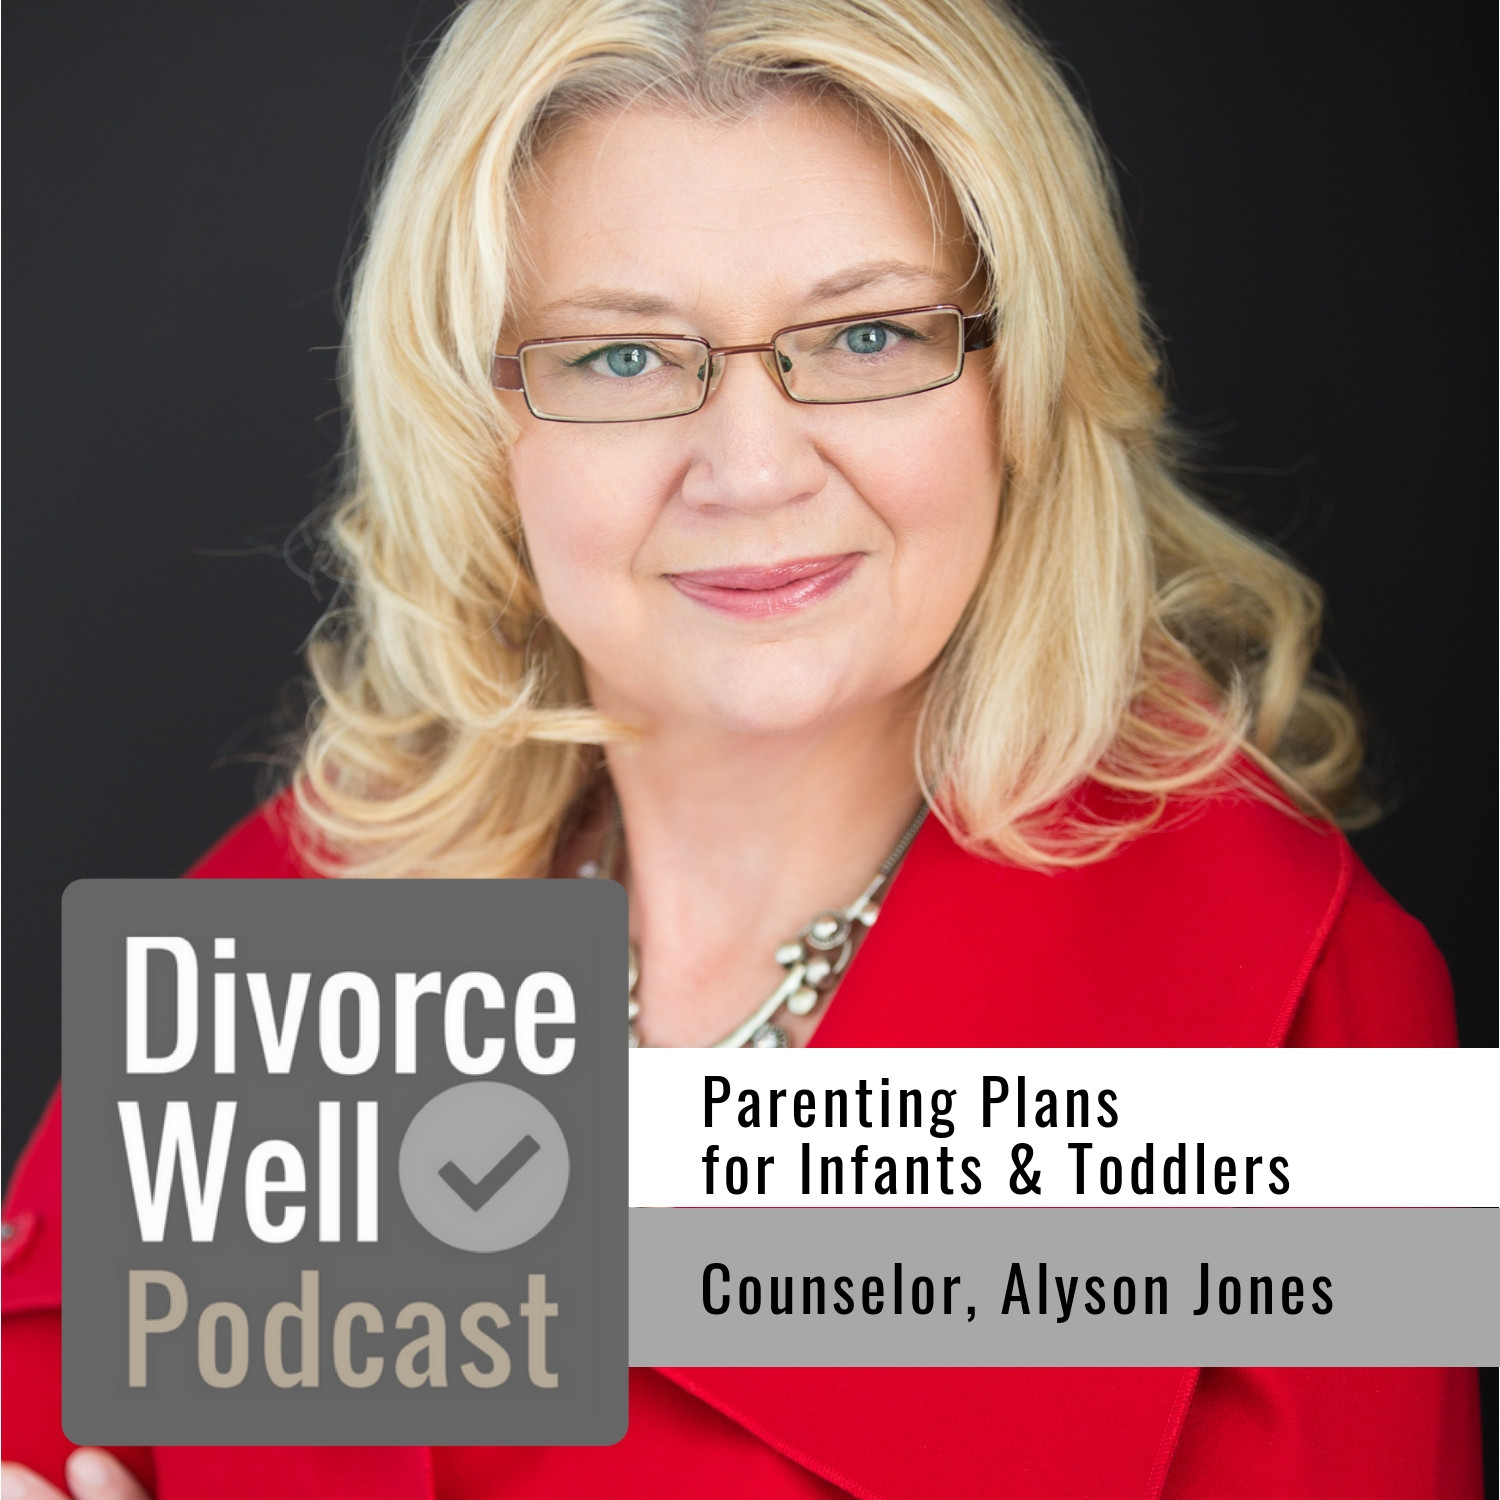 The Divorce Well Podcast - 28 - Parenting Plans for Infants & Toddlers, with Counselor Alyson Jones